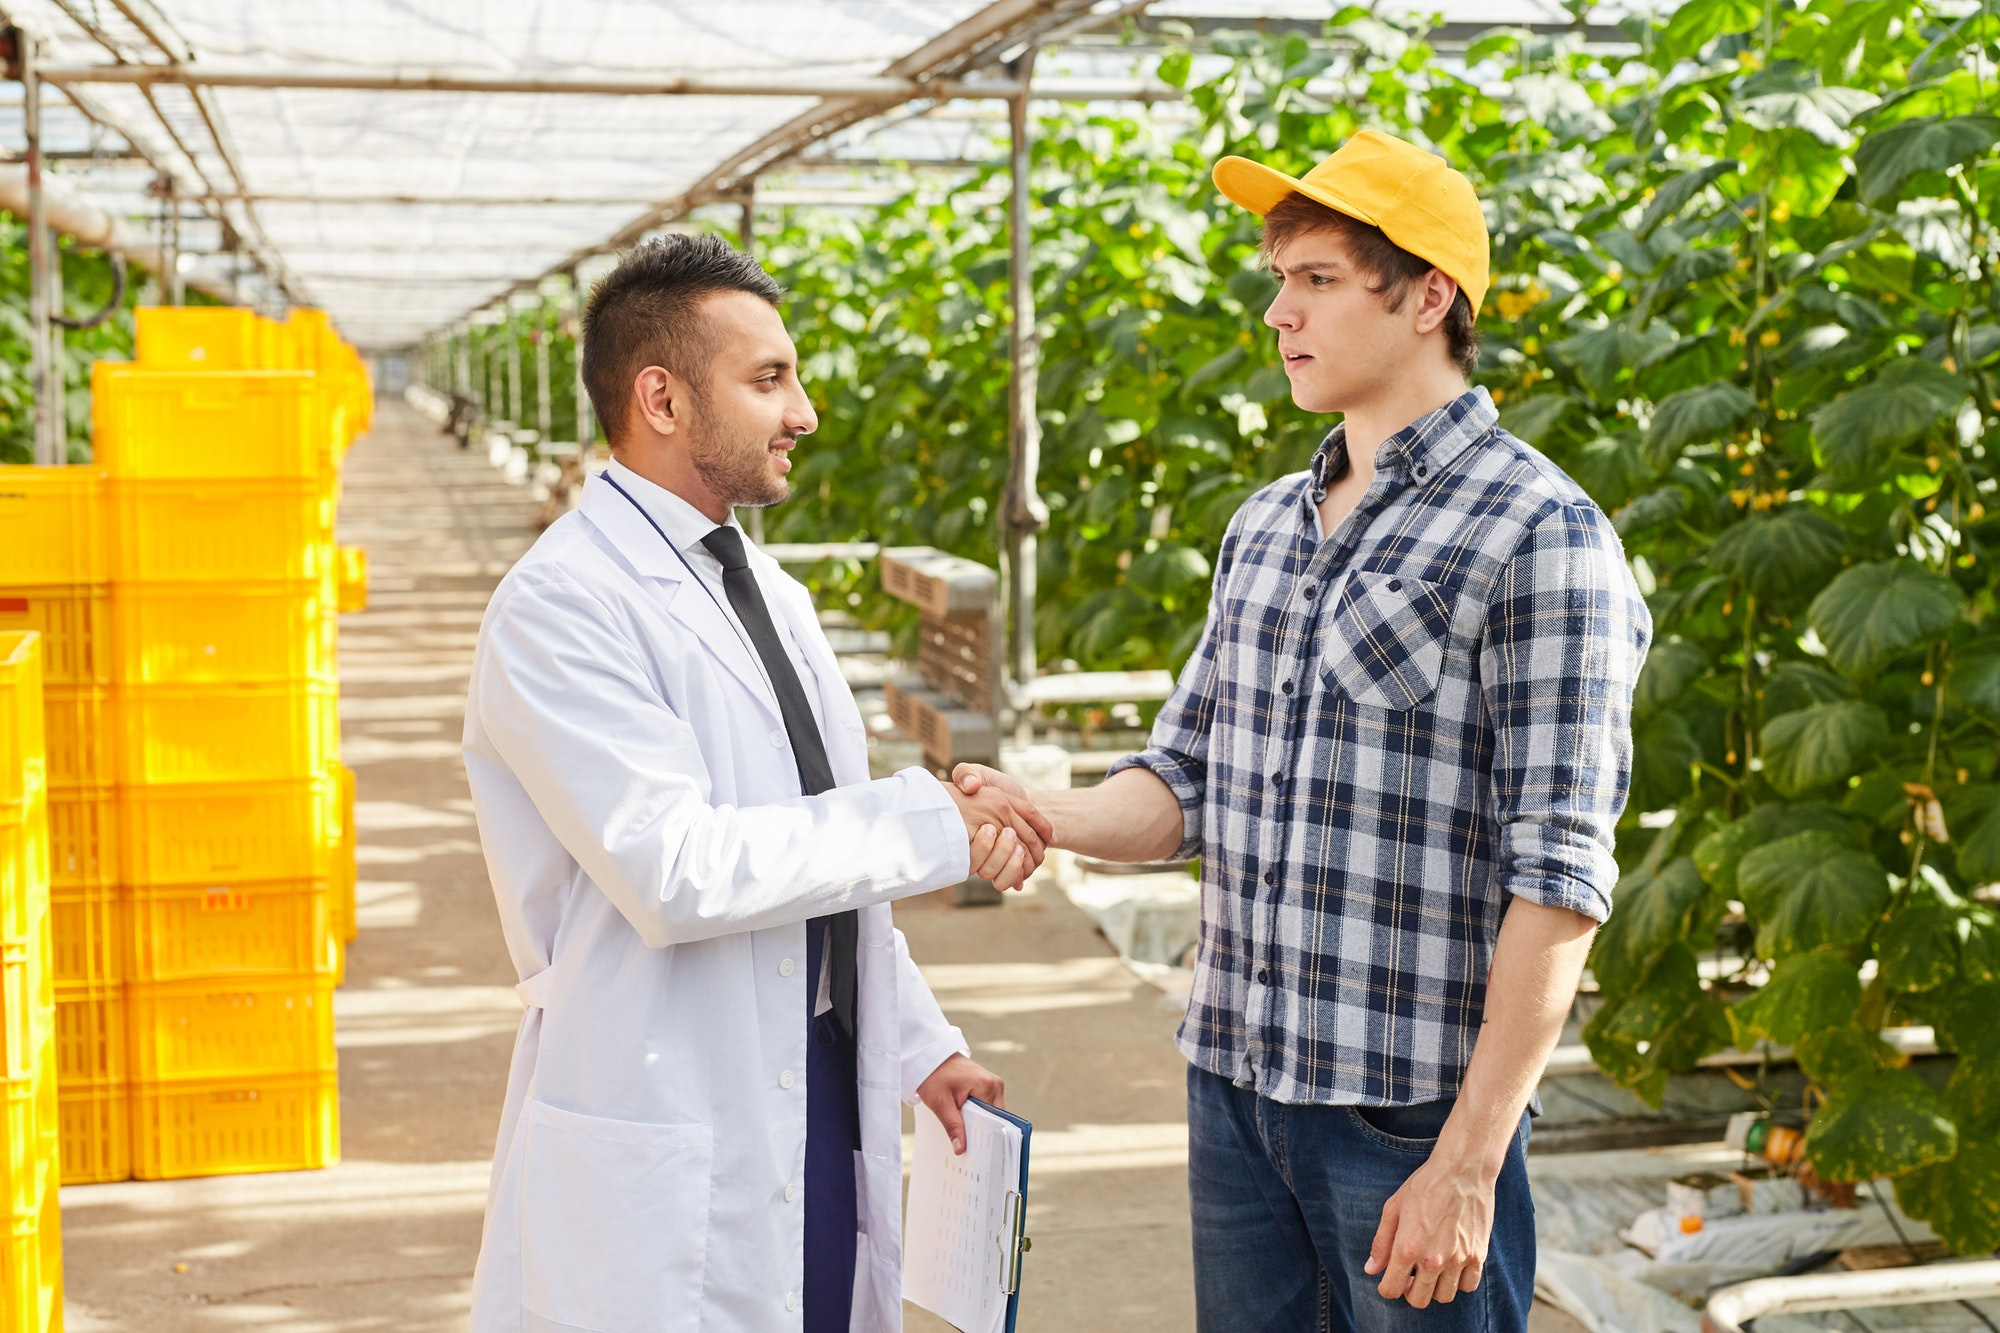 Farmer handshaking with quality control inspector